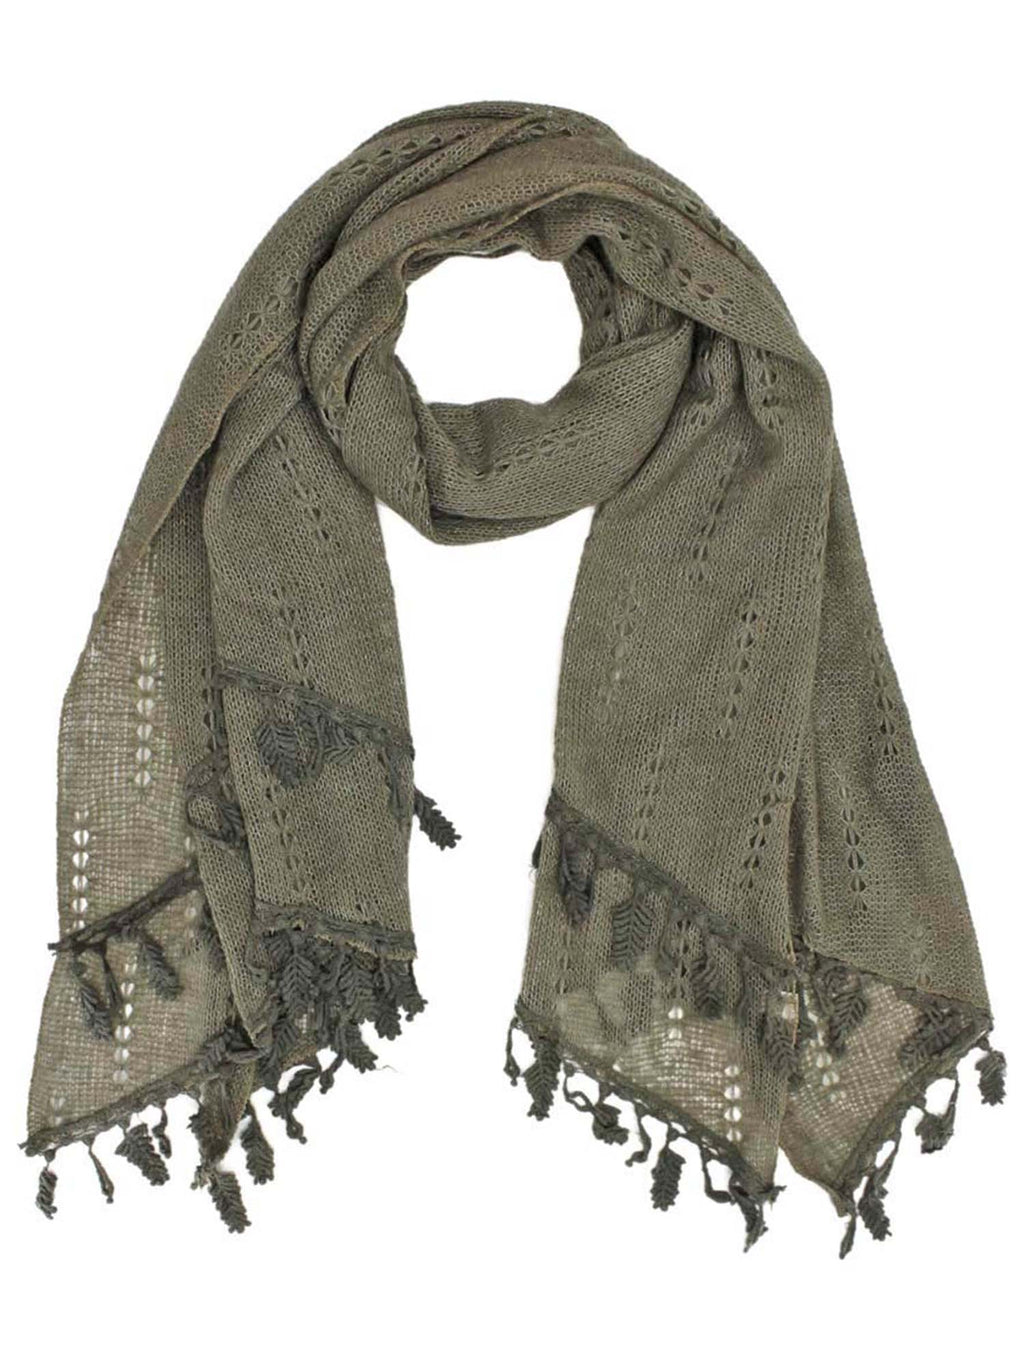 Taupe Thin Knit Scarf Shawl W/ Dangling Leaf Fringe